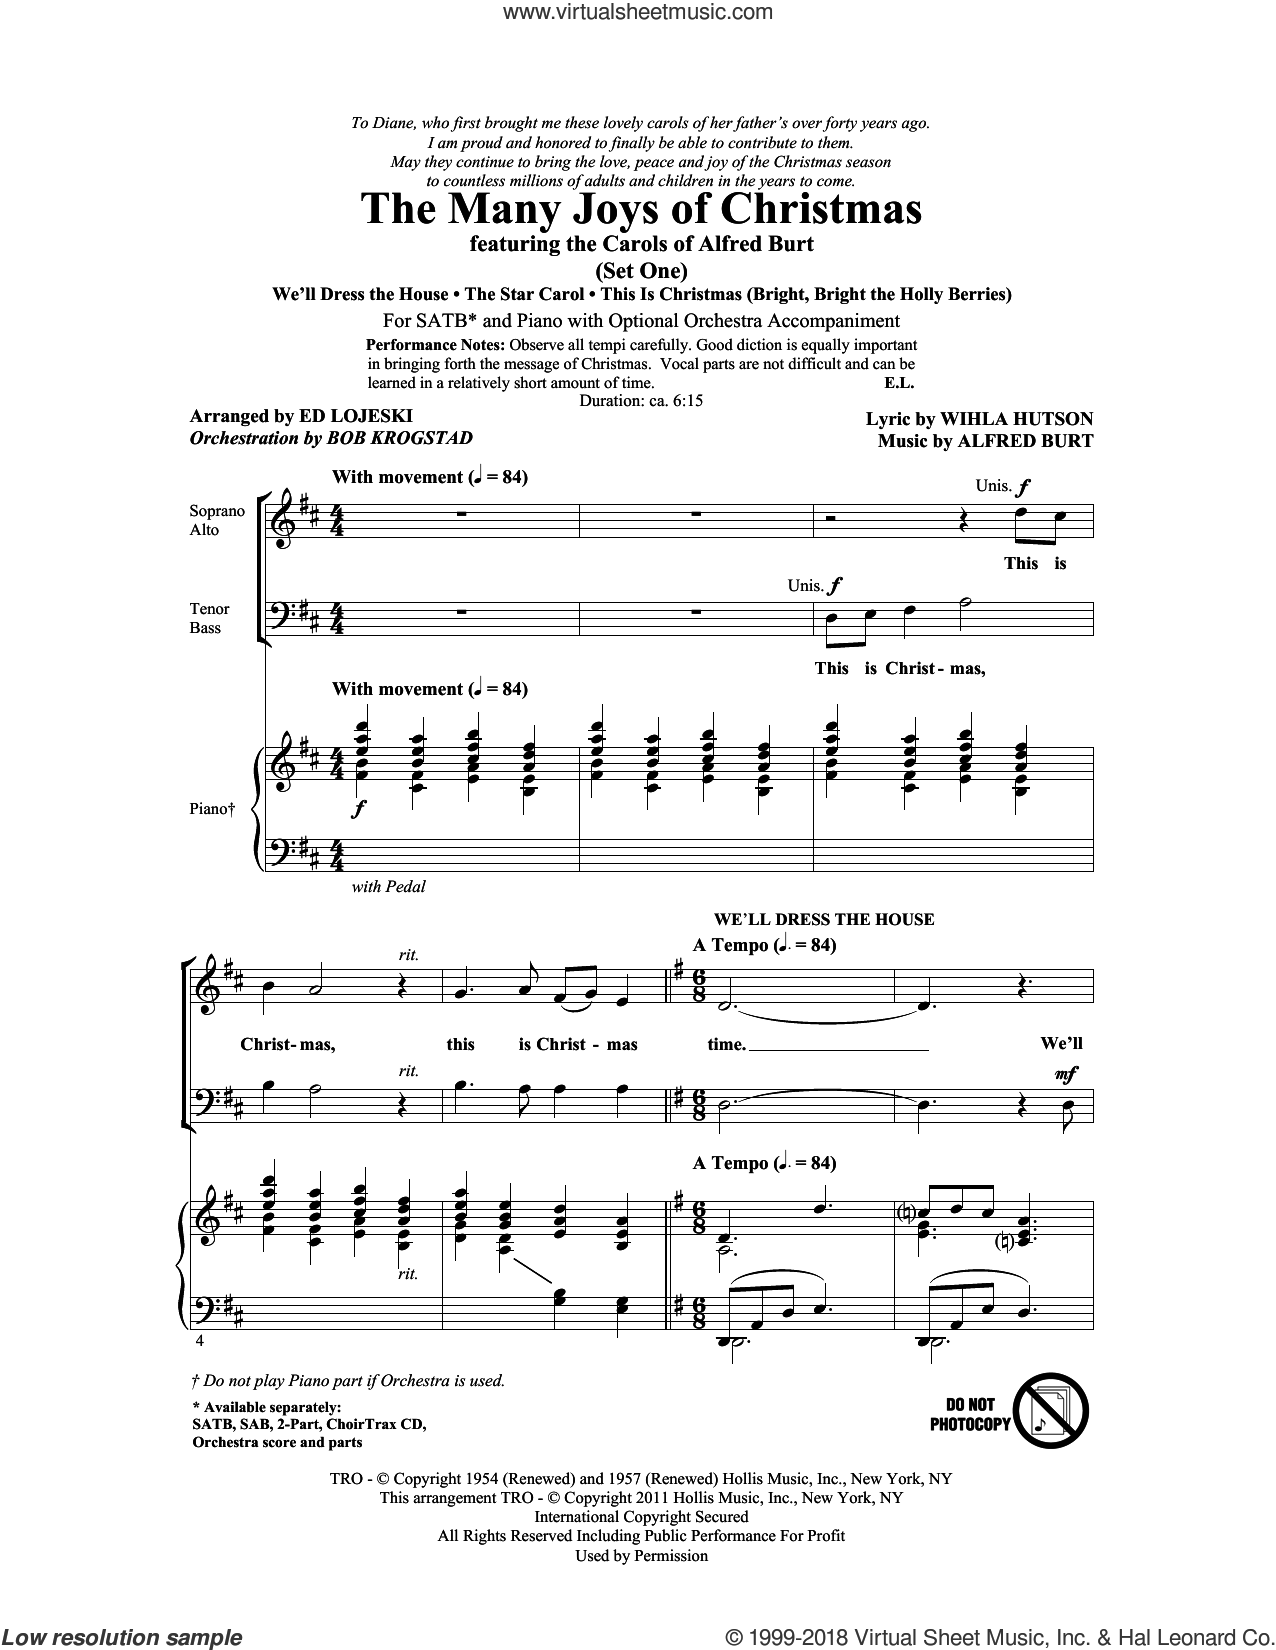 The Many Joys Of Christmas (featuring The Carols of Alfred Burt) Set 1 sheet music for choir (SATB: soprano, alto, tenor, bass) by Ed Lojeski, Alfred Burt, Bob Krogstad and Wihla Hutson, intermediate. Score Image Preview.